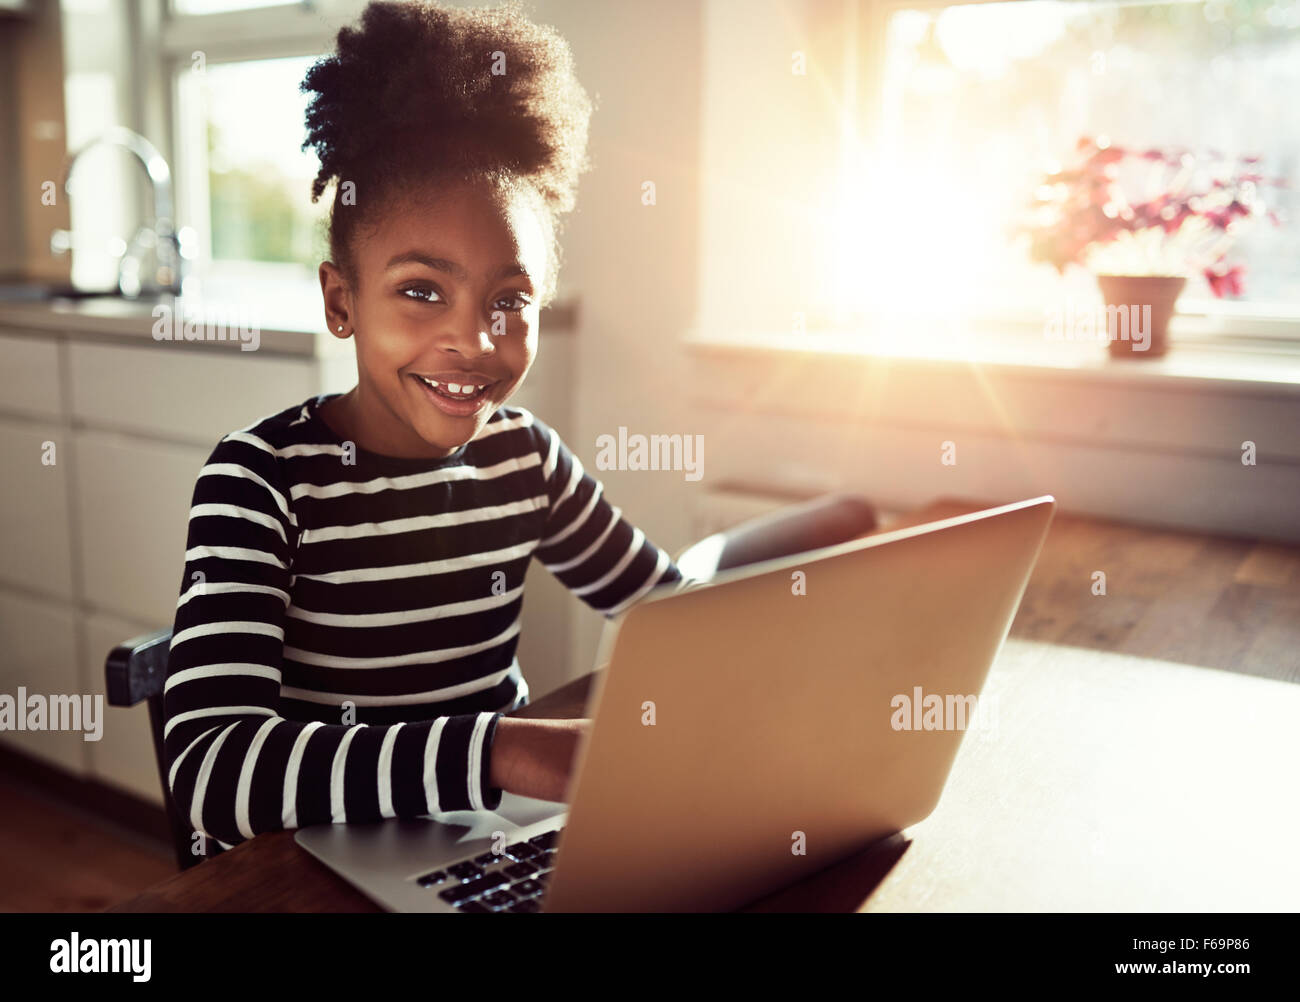 Smiling friendly young black african girl with a cute top knot afro hairstyle sitting at a laptop computer at the - Stock Image